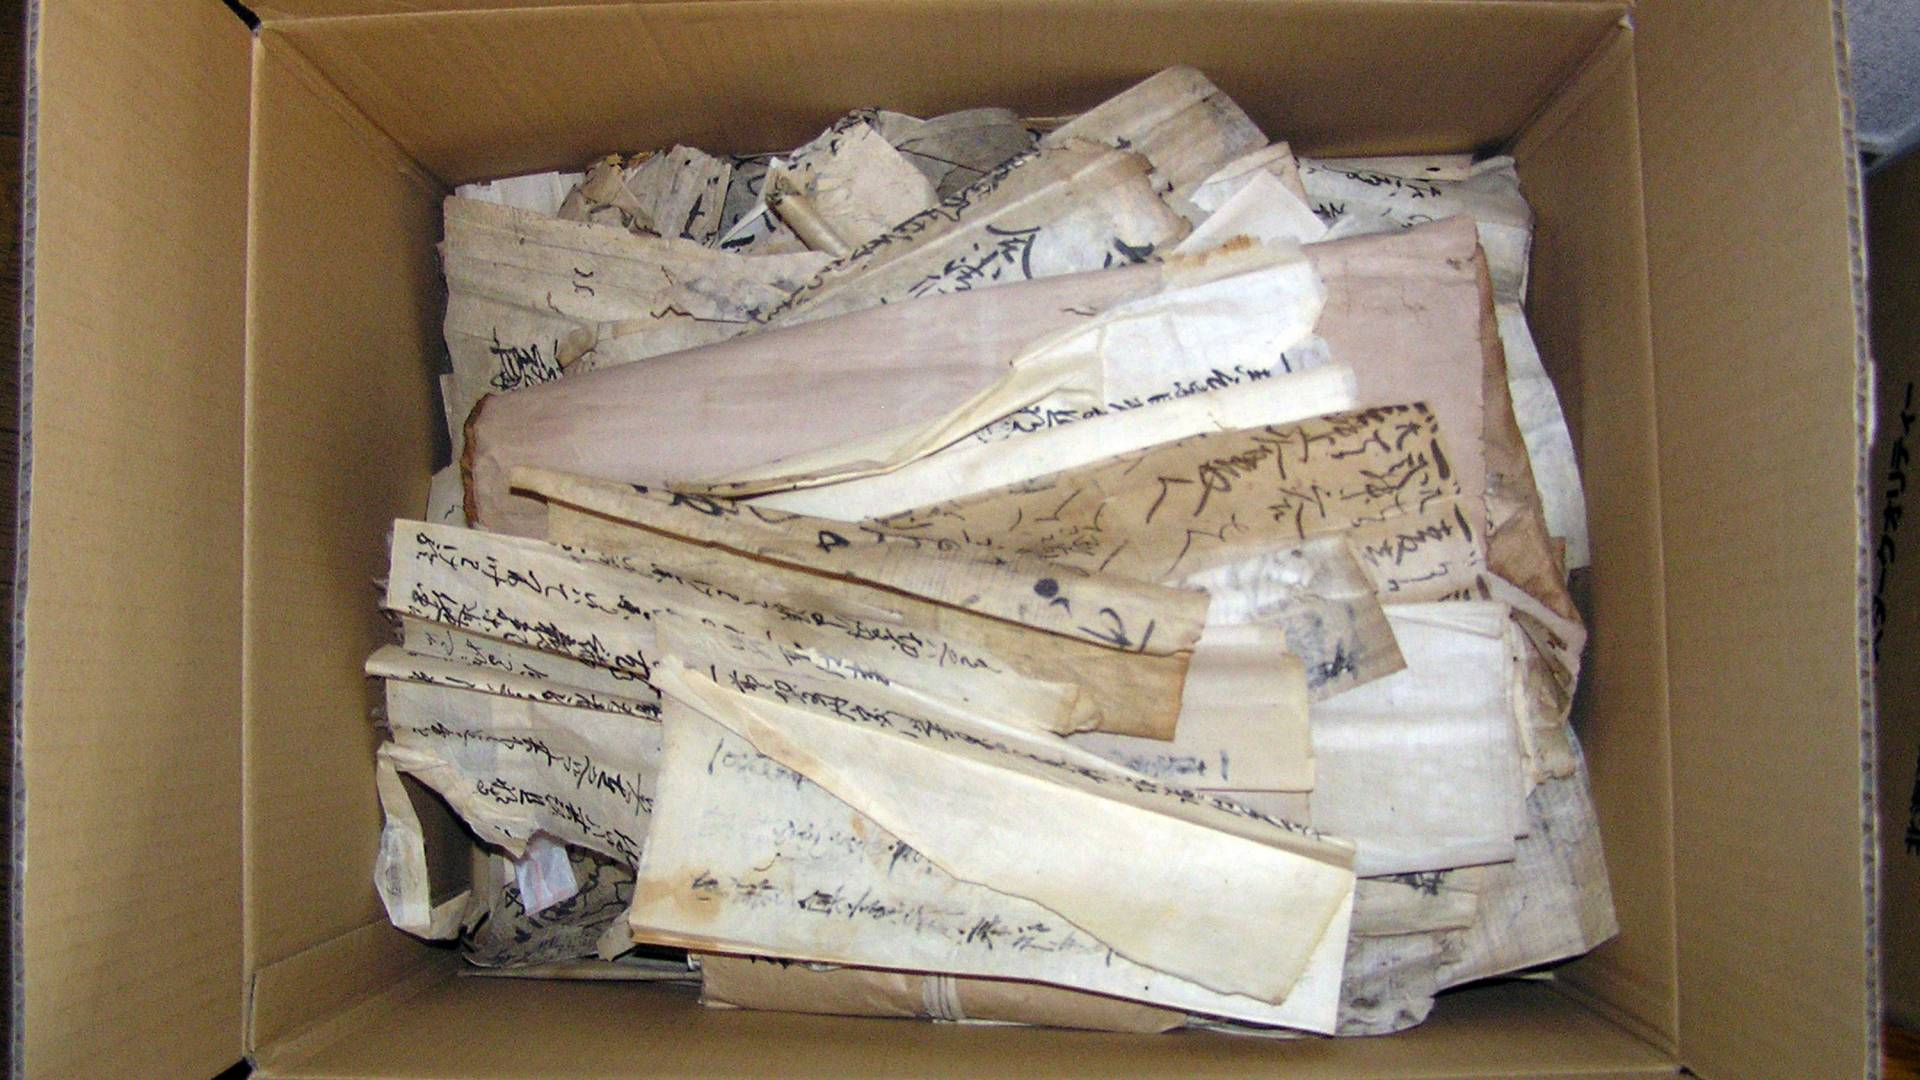 Cardboard box full of Japanese medieval documents